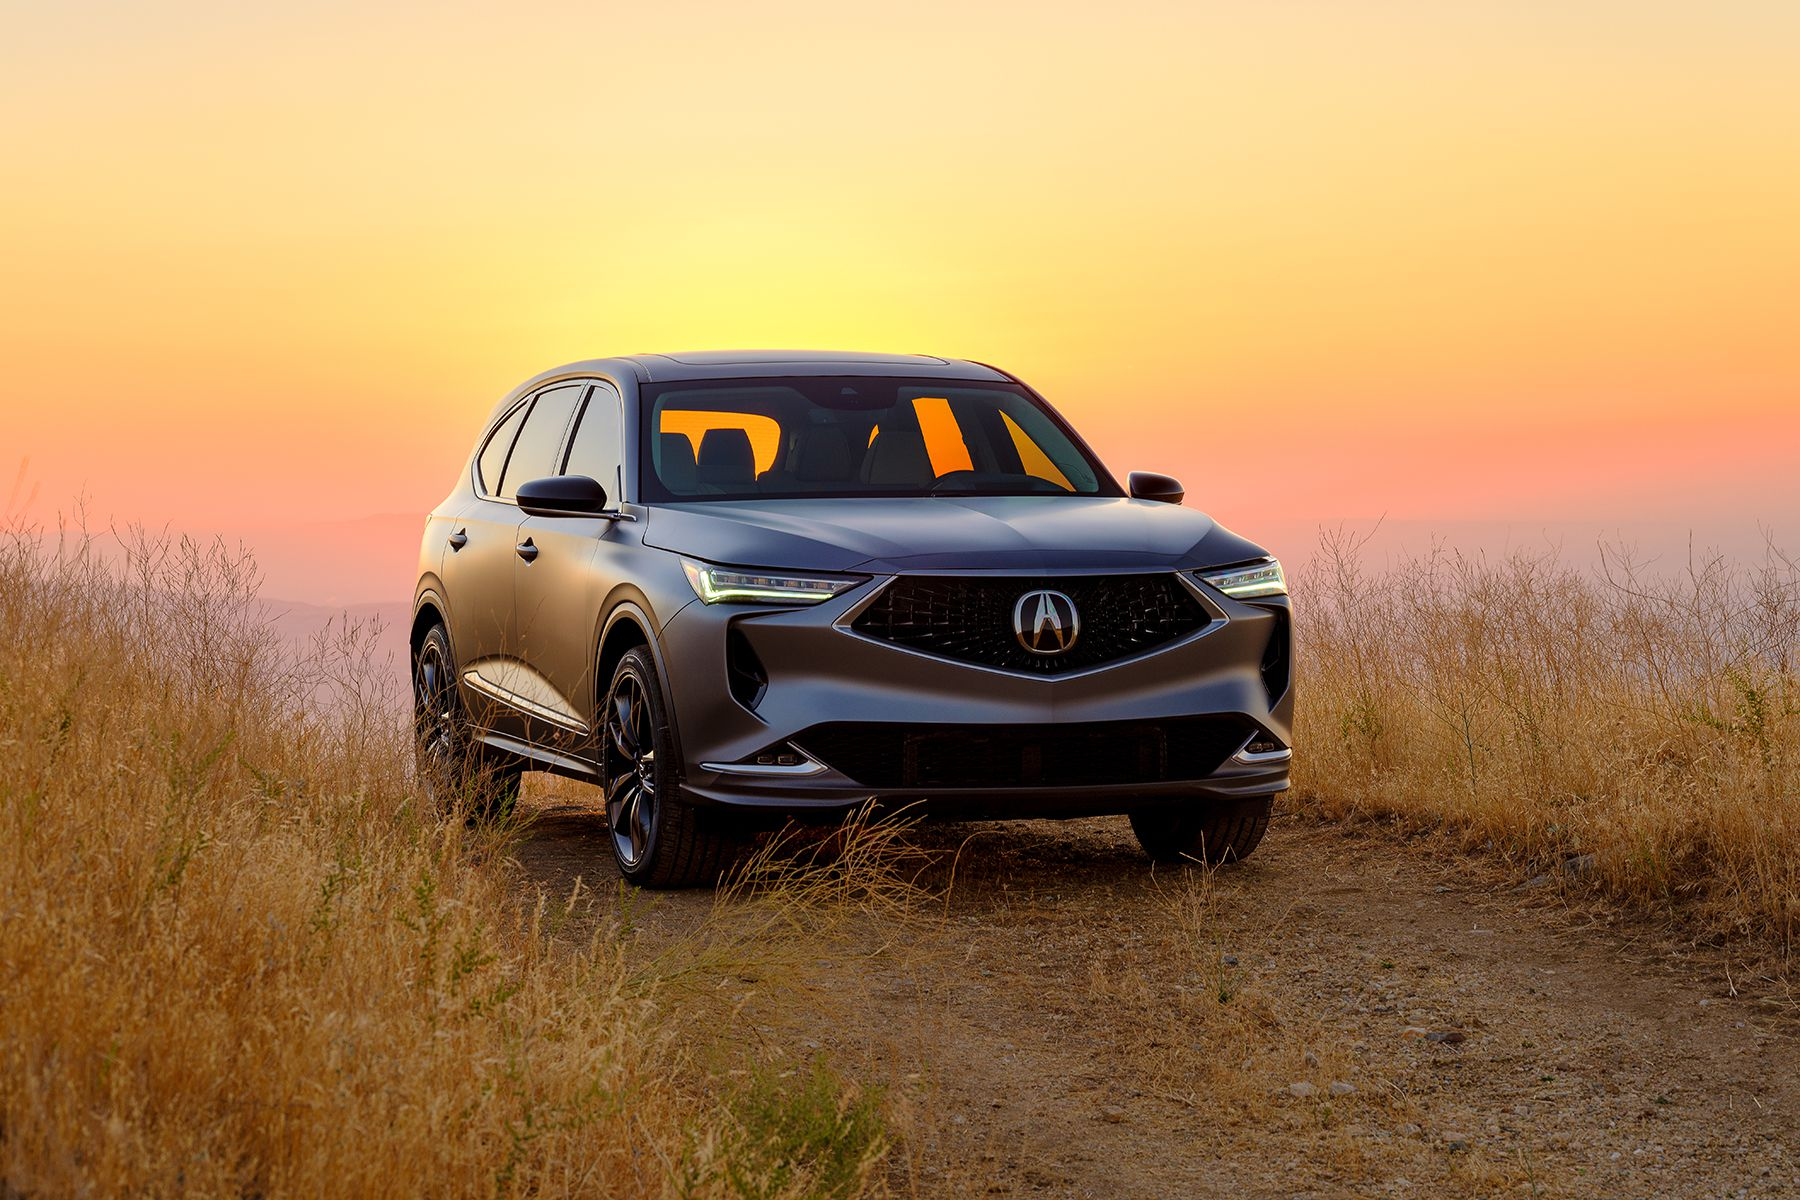 The 2022 Acura MDX Prototype